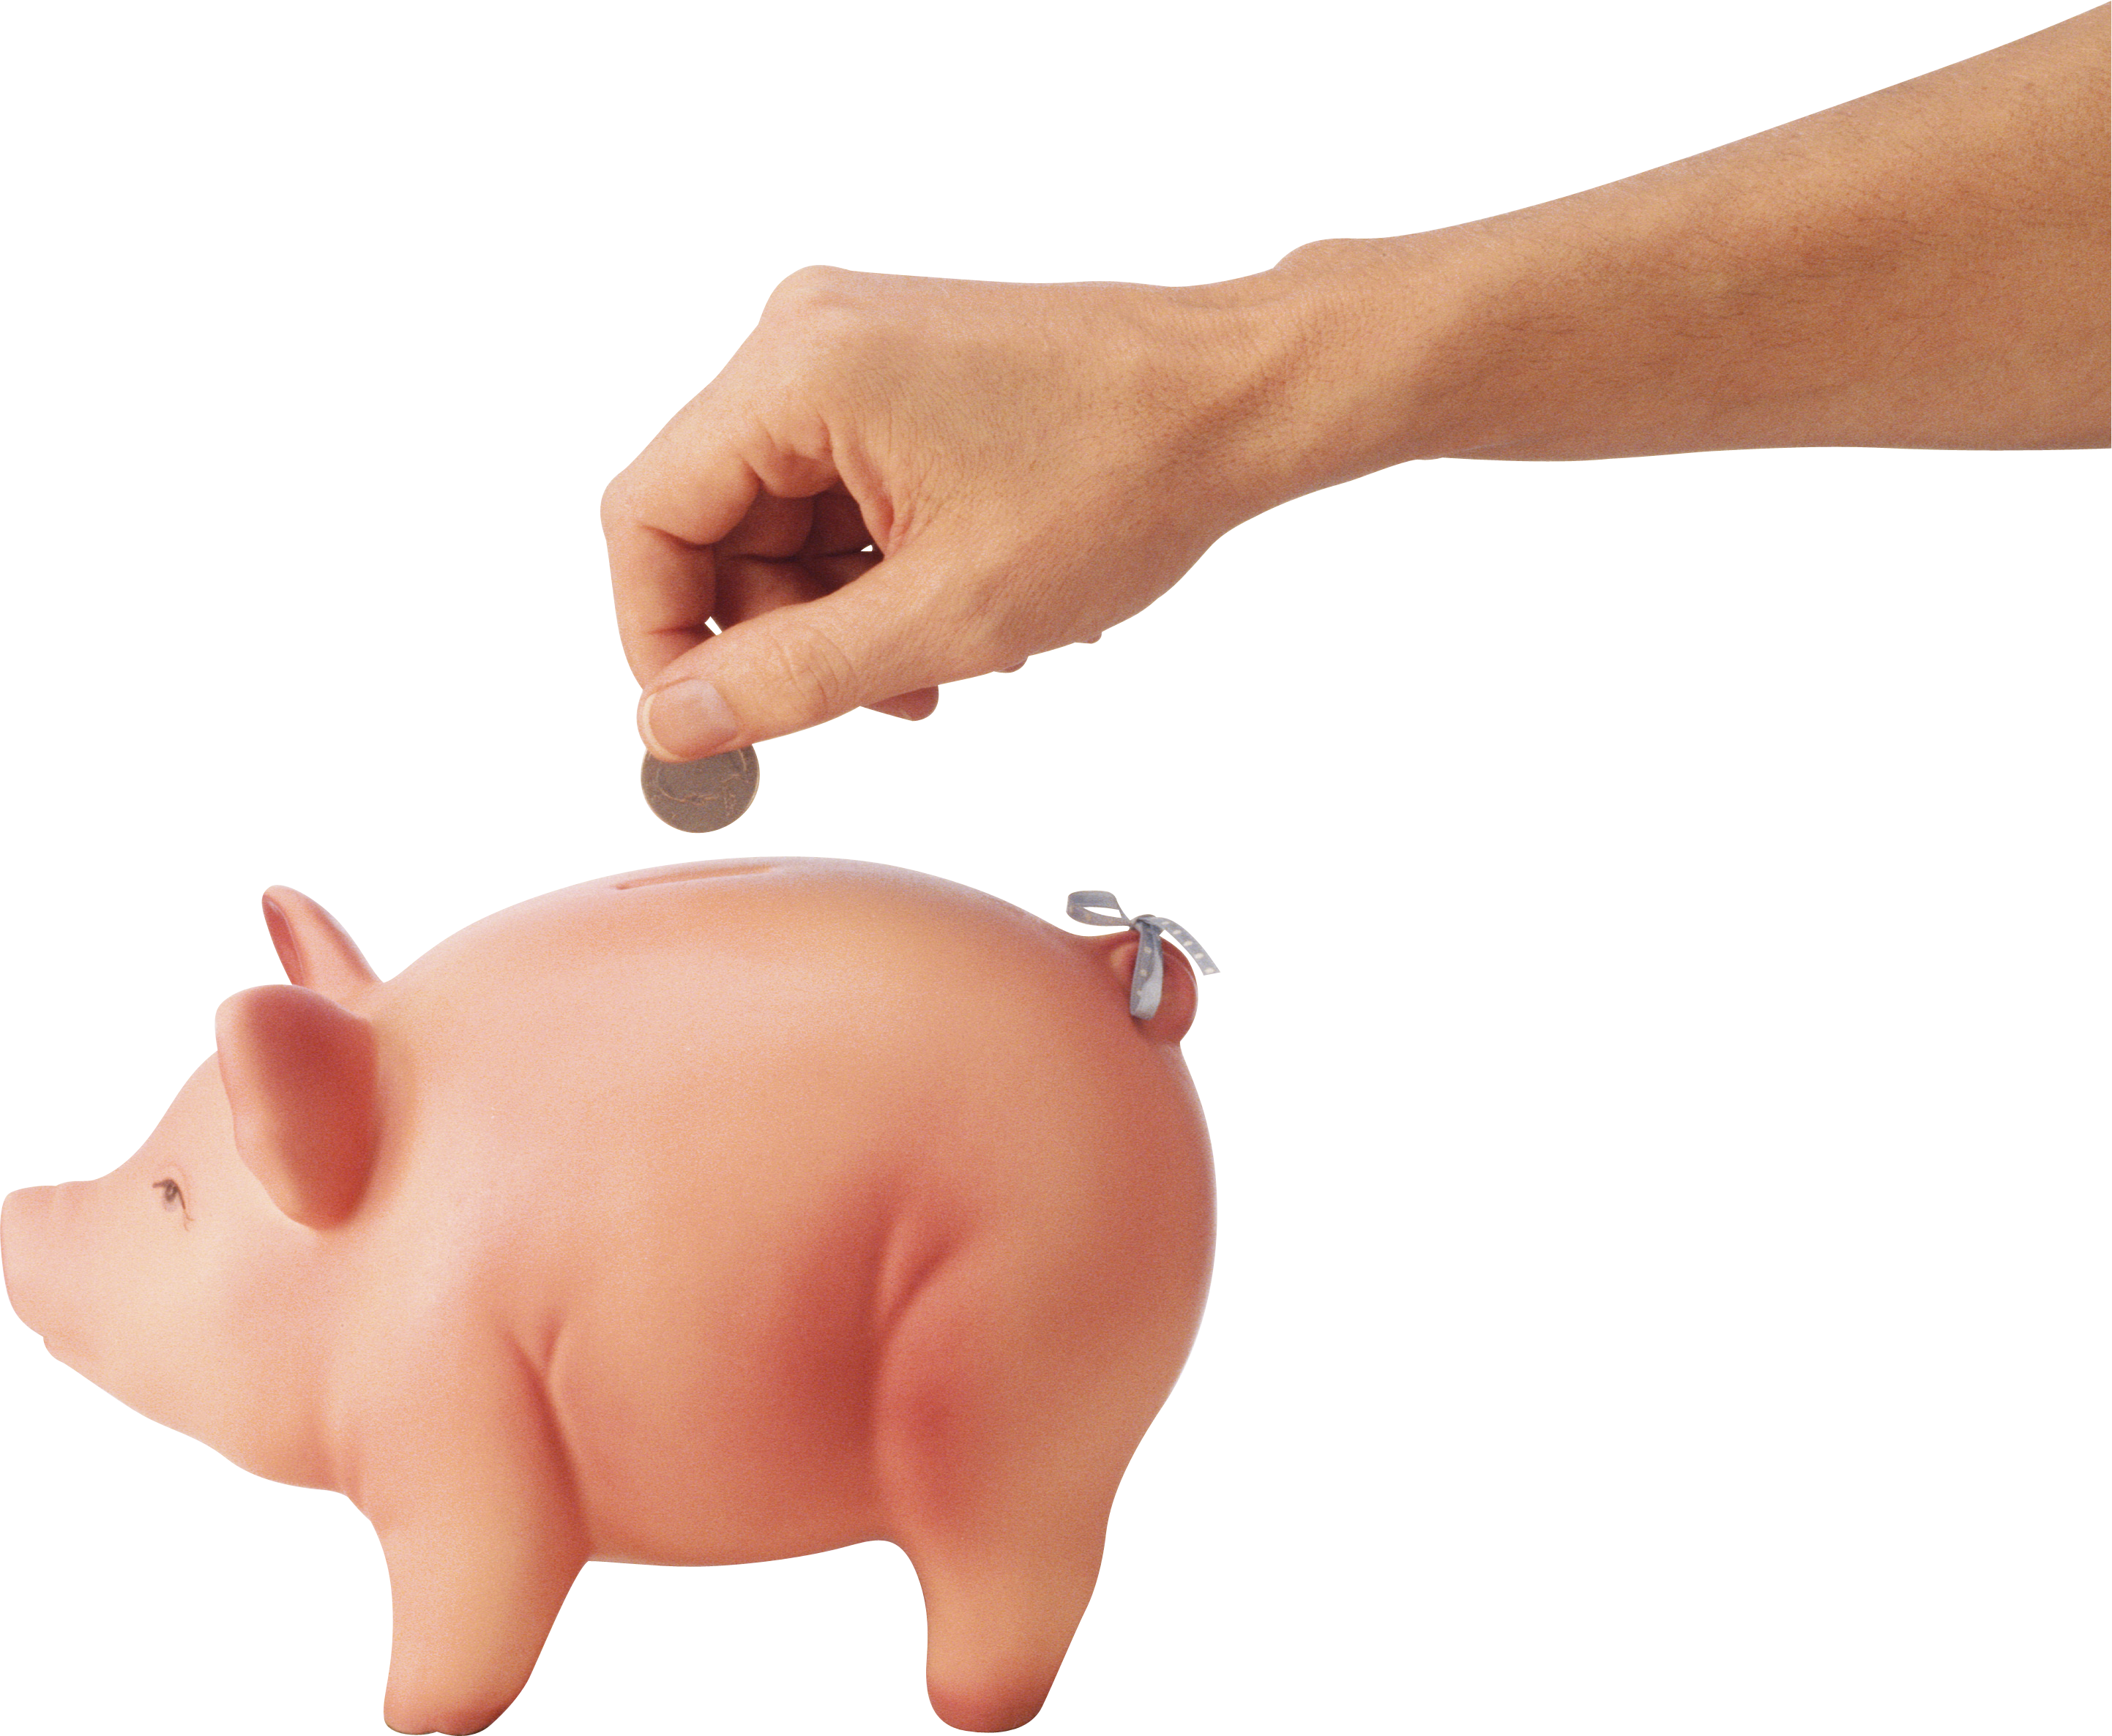 Girl give the money to bank clipart graphic download Hand Putting Money Into Saving Pig | Isolated Stock Photo by noBACKS.com graphic download